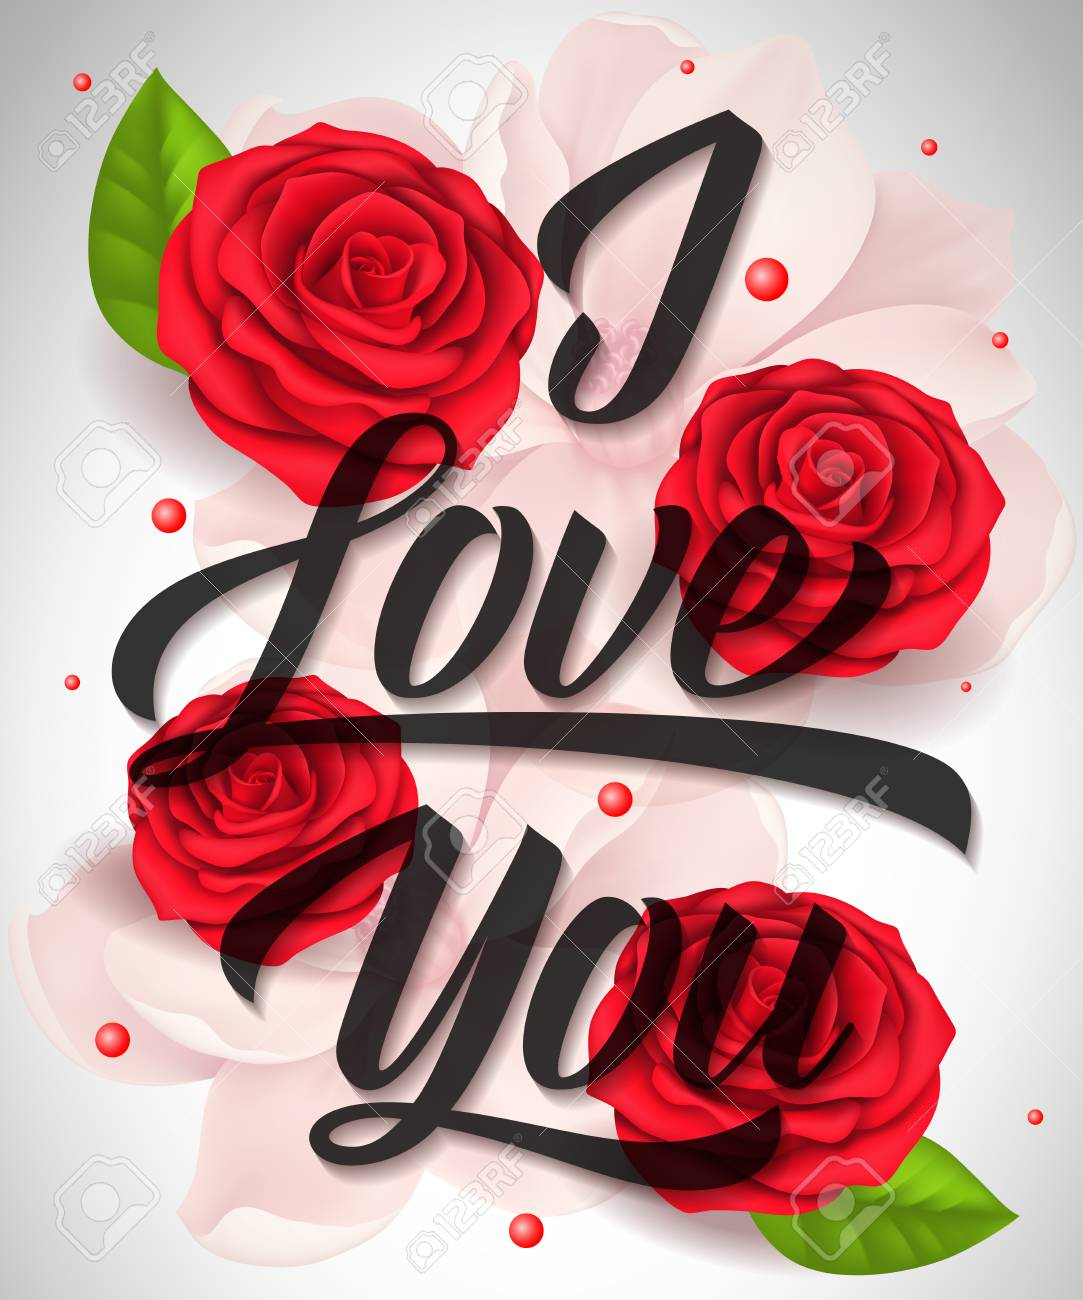 I Love You Lettering With Blossoms And Roses Calligraphic Inscription Royalty Free Cliparts Vectors And Stock Illustration Image 92933040